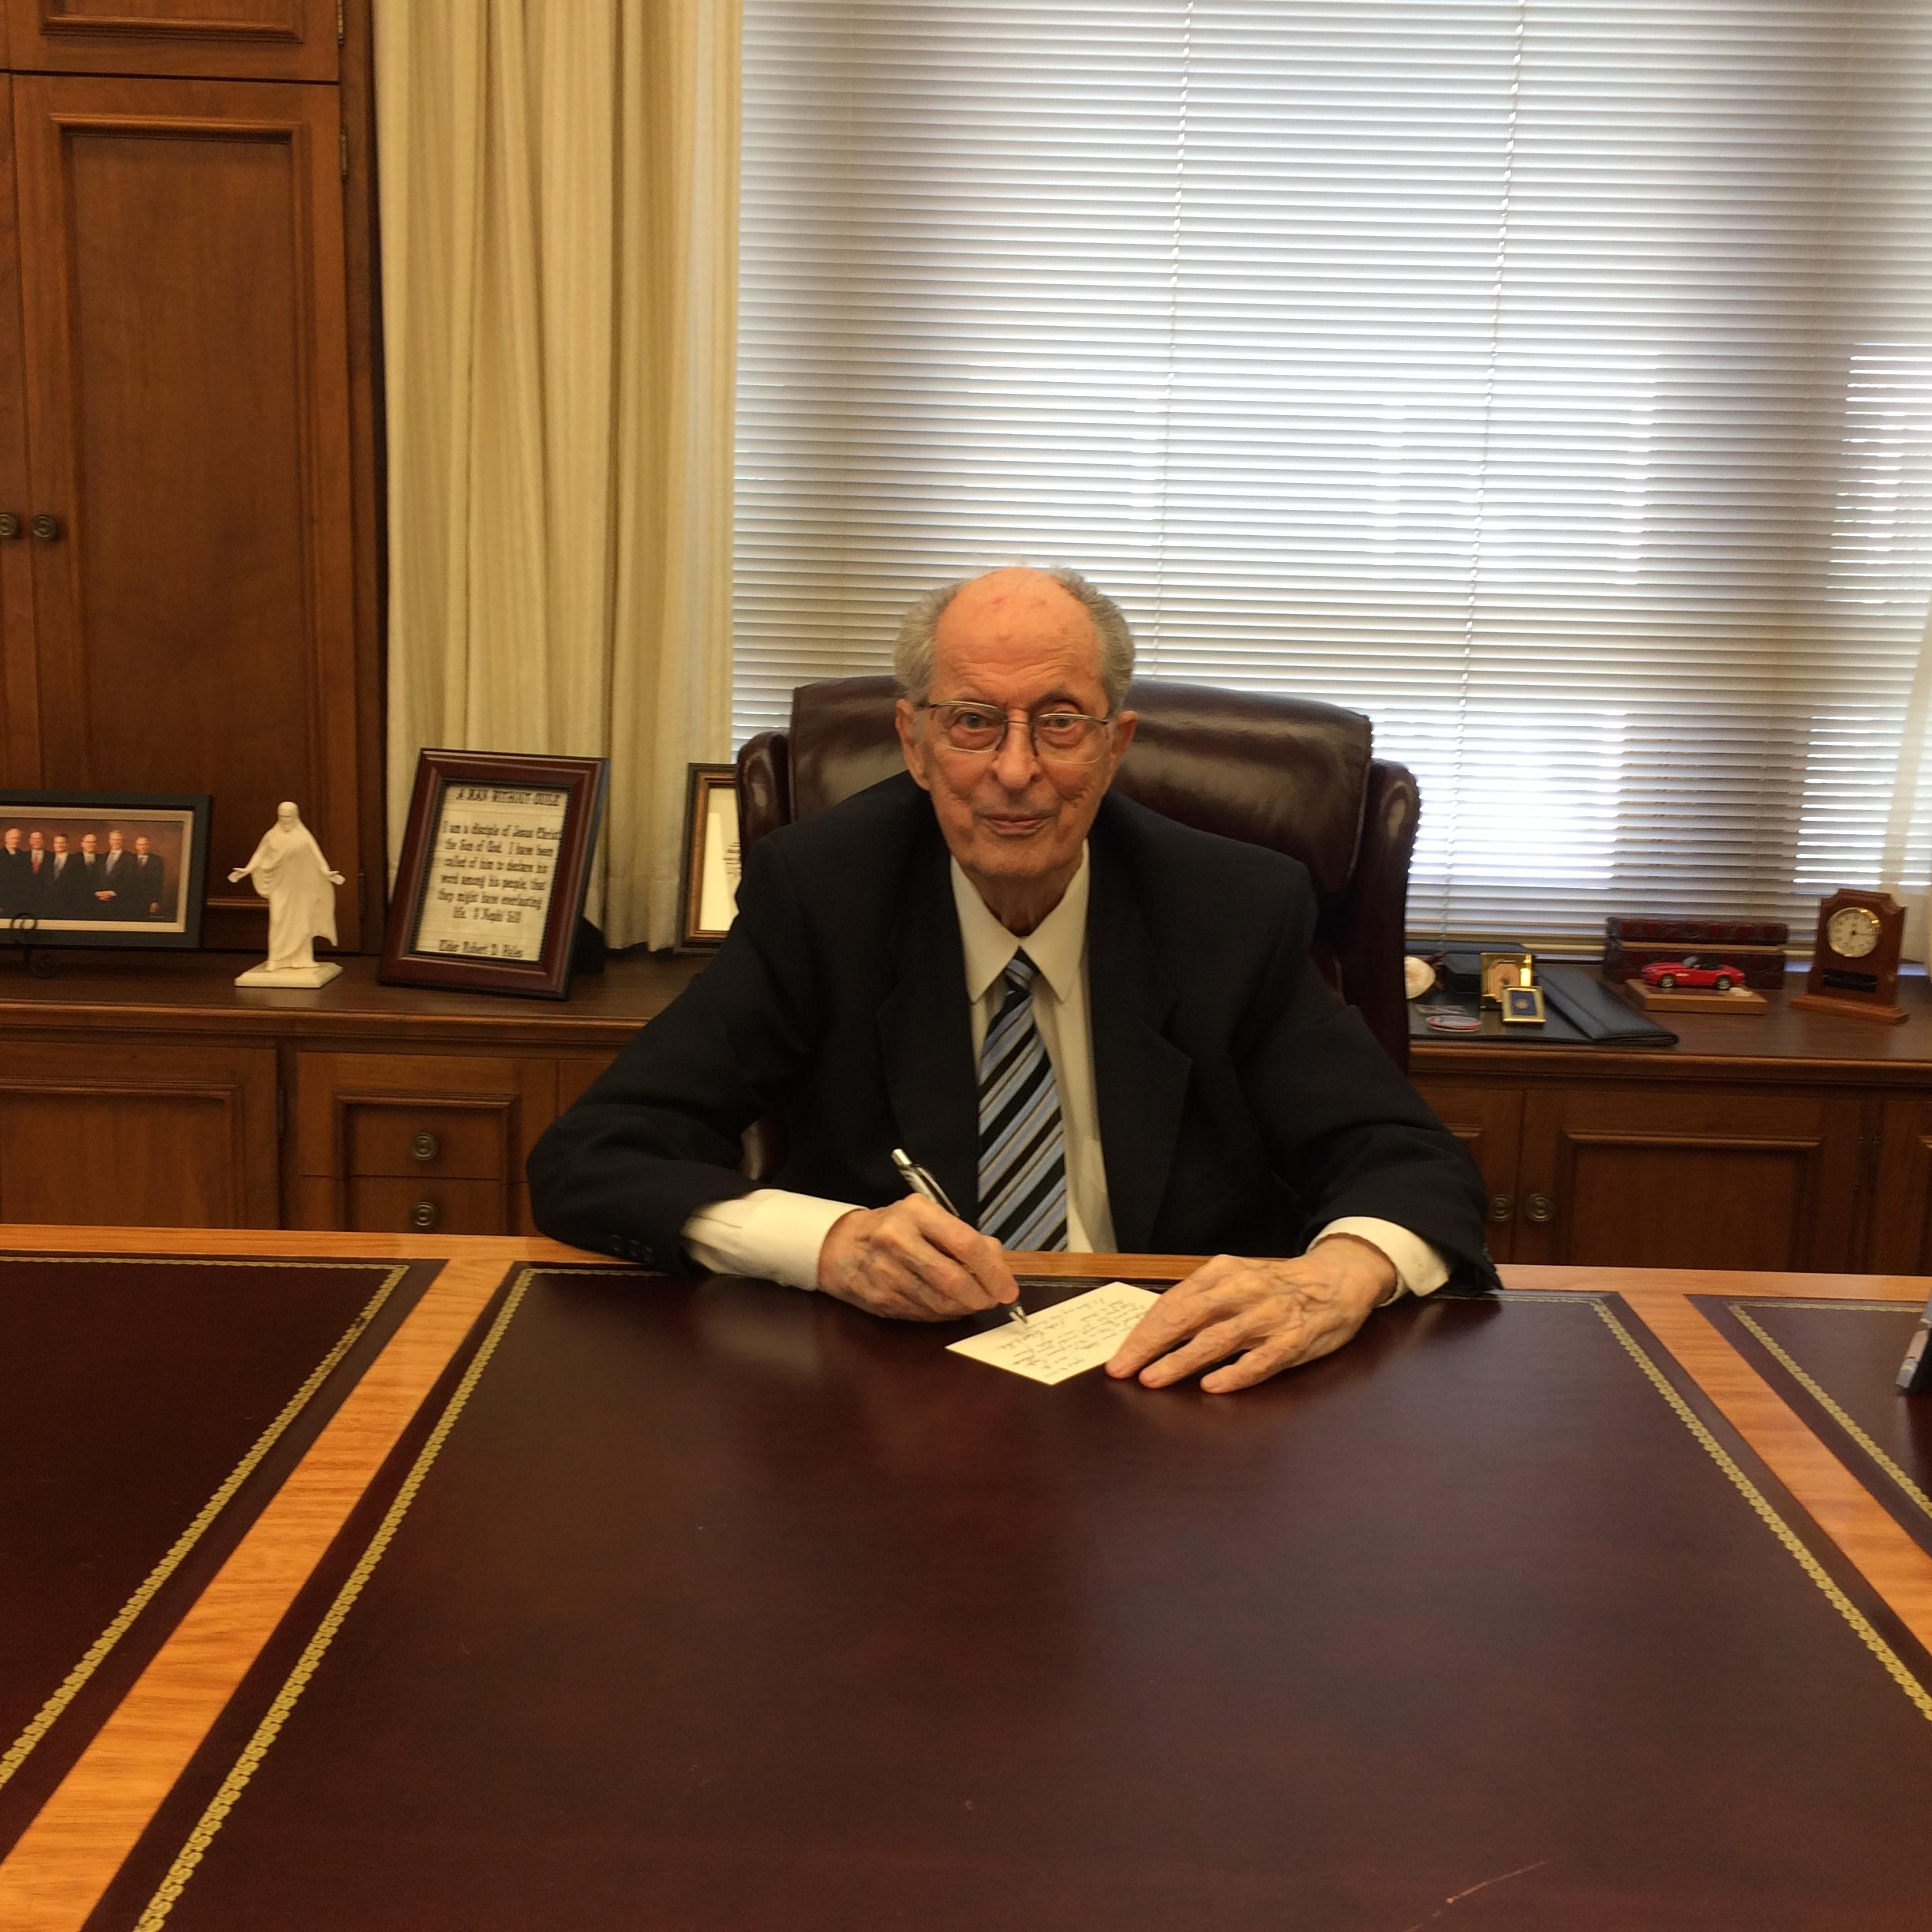 Elder Robert D. Hales in his office in April 2015 (Photo: LDS church, Copyright Intellectual Reserve, Inc.)